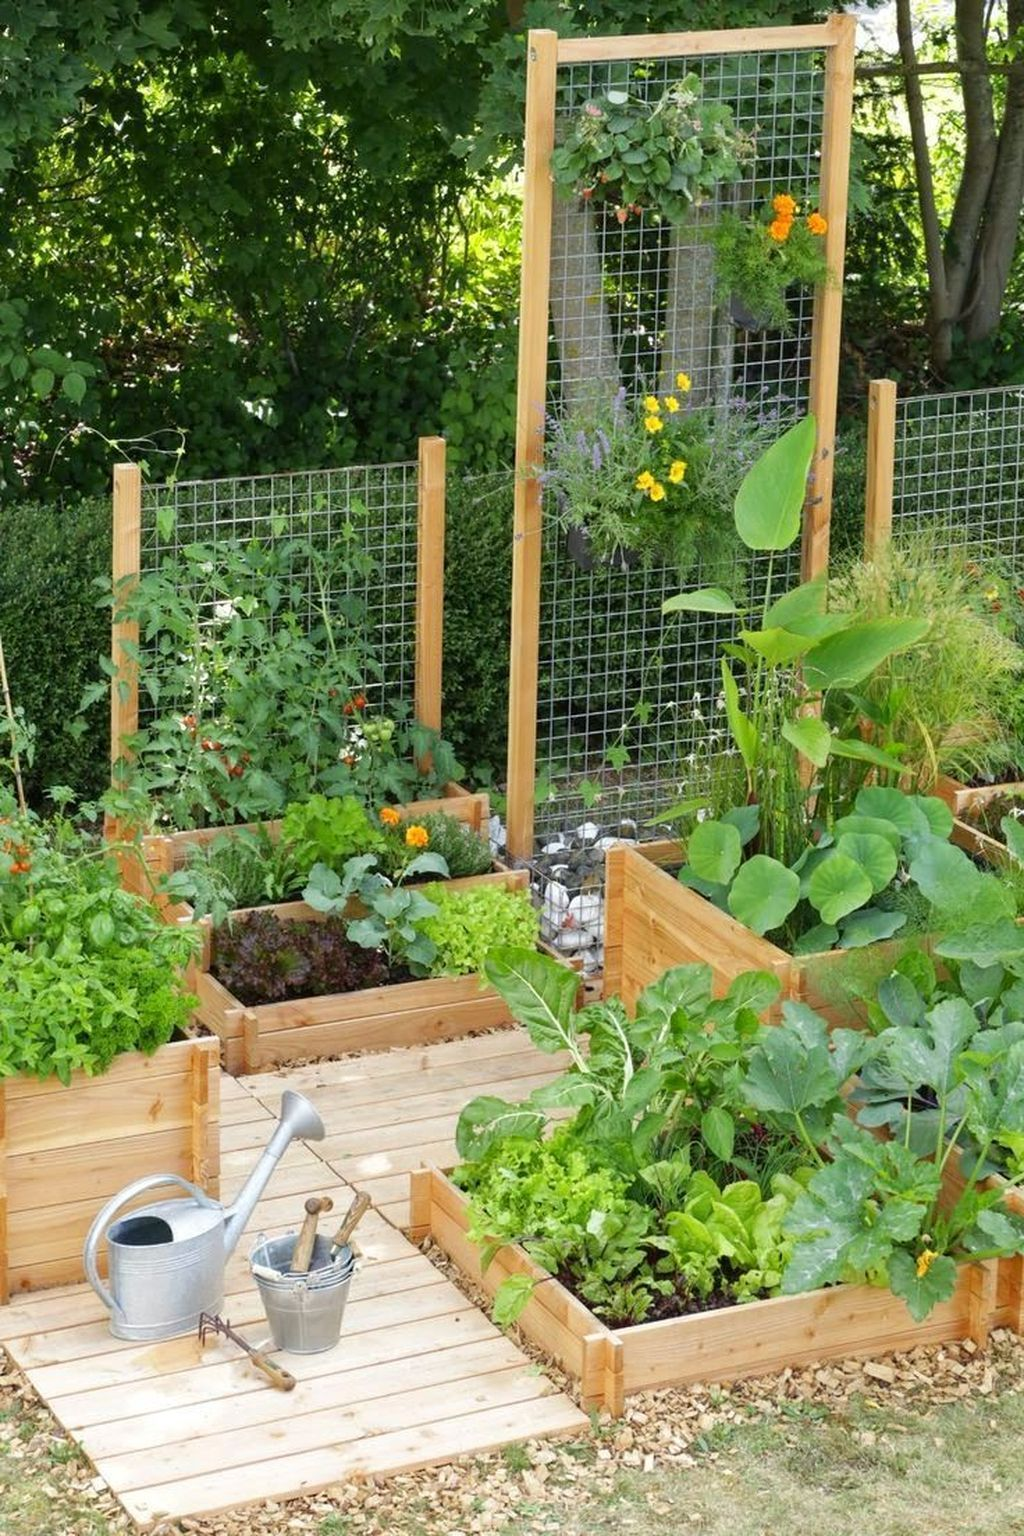 30+ Cozy Small Vegetable Garden Ideas On A Budget, #Budget #cozy #Garden #Ideas #Small #Veget...